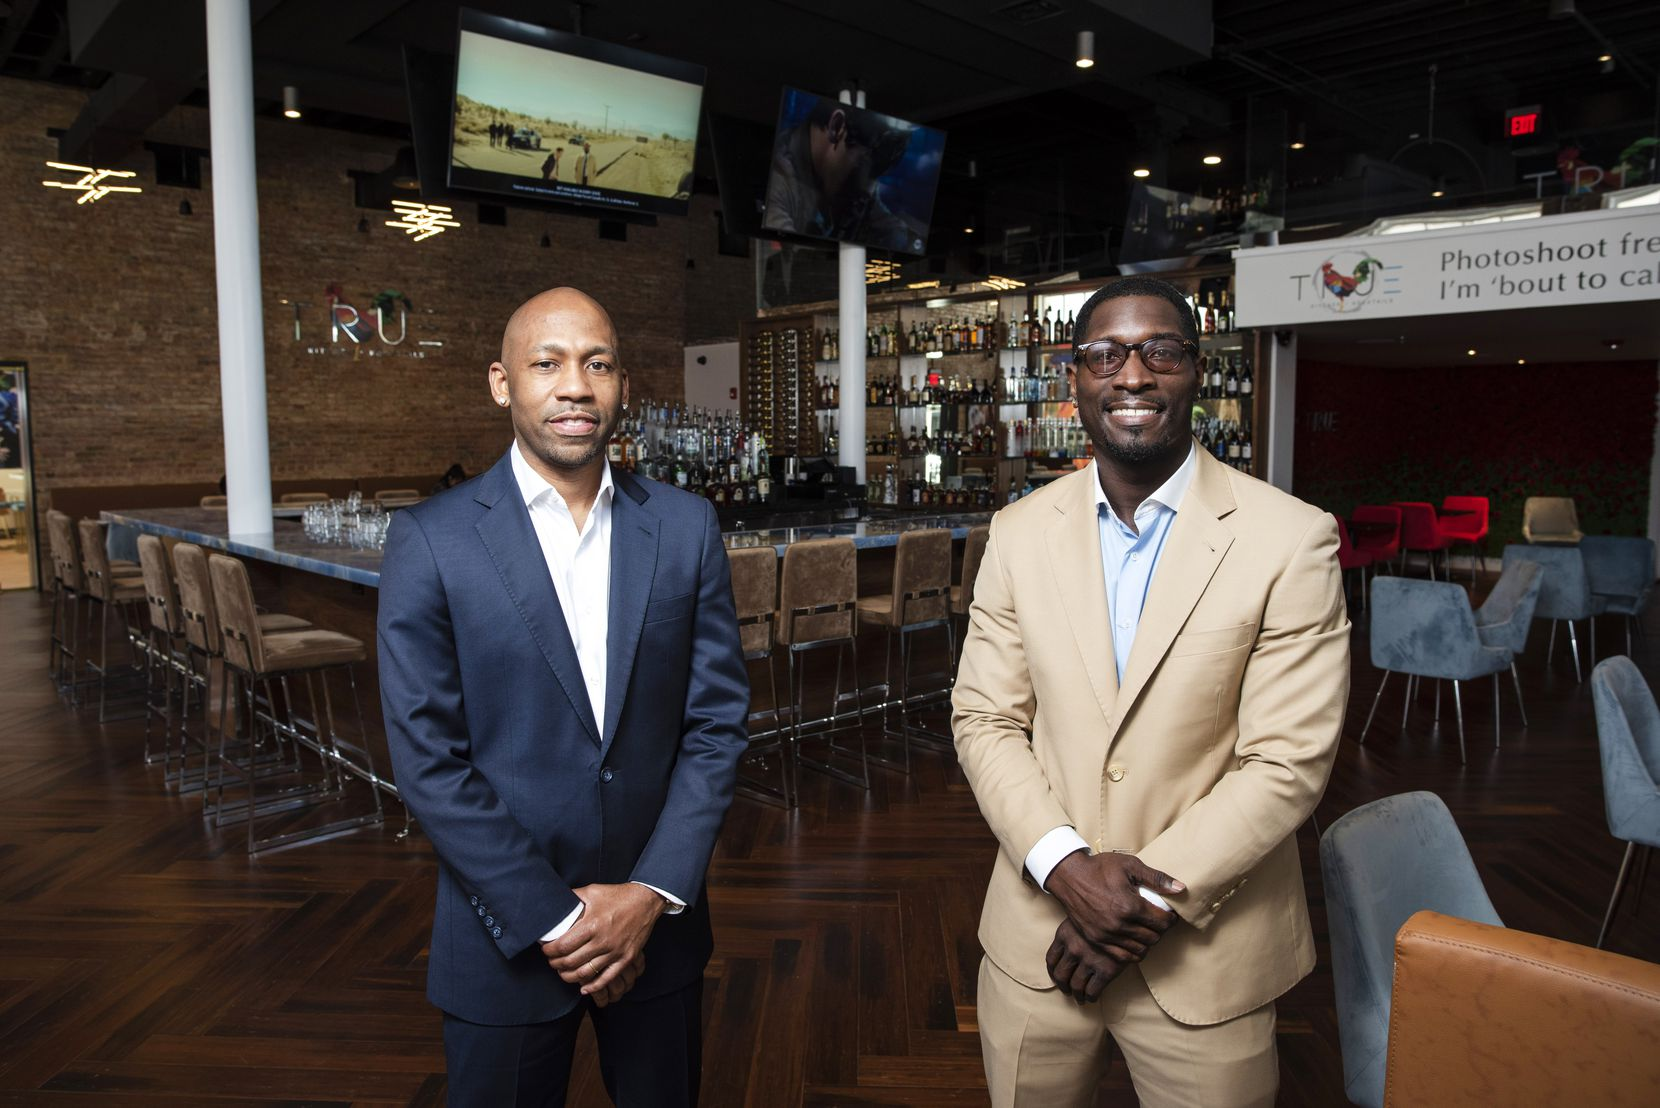 Owner Kevin Kelley (left) and general manager Rico Spears at True Kitchen + Kocktails restaurant in downtown Dallas.